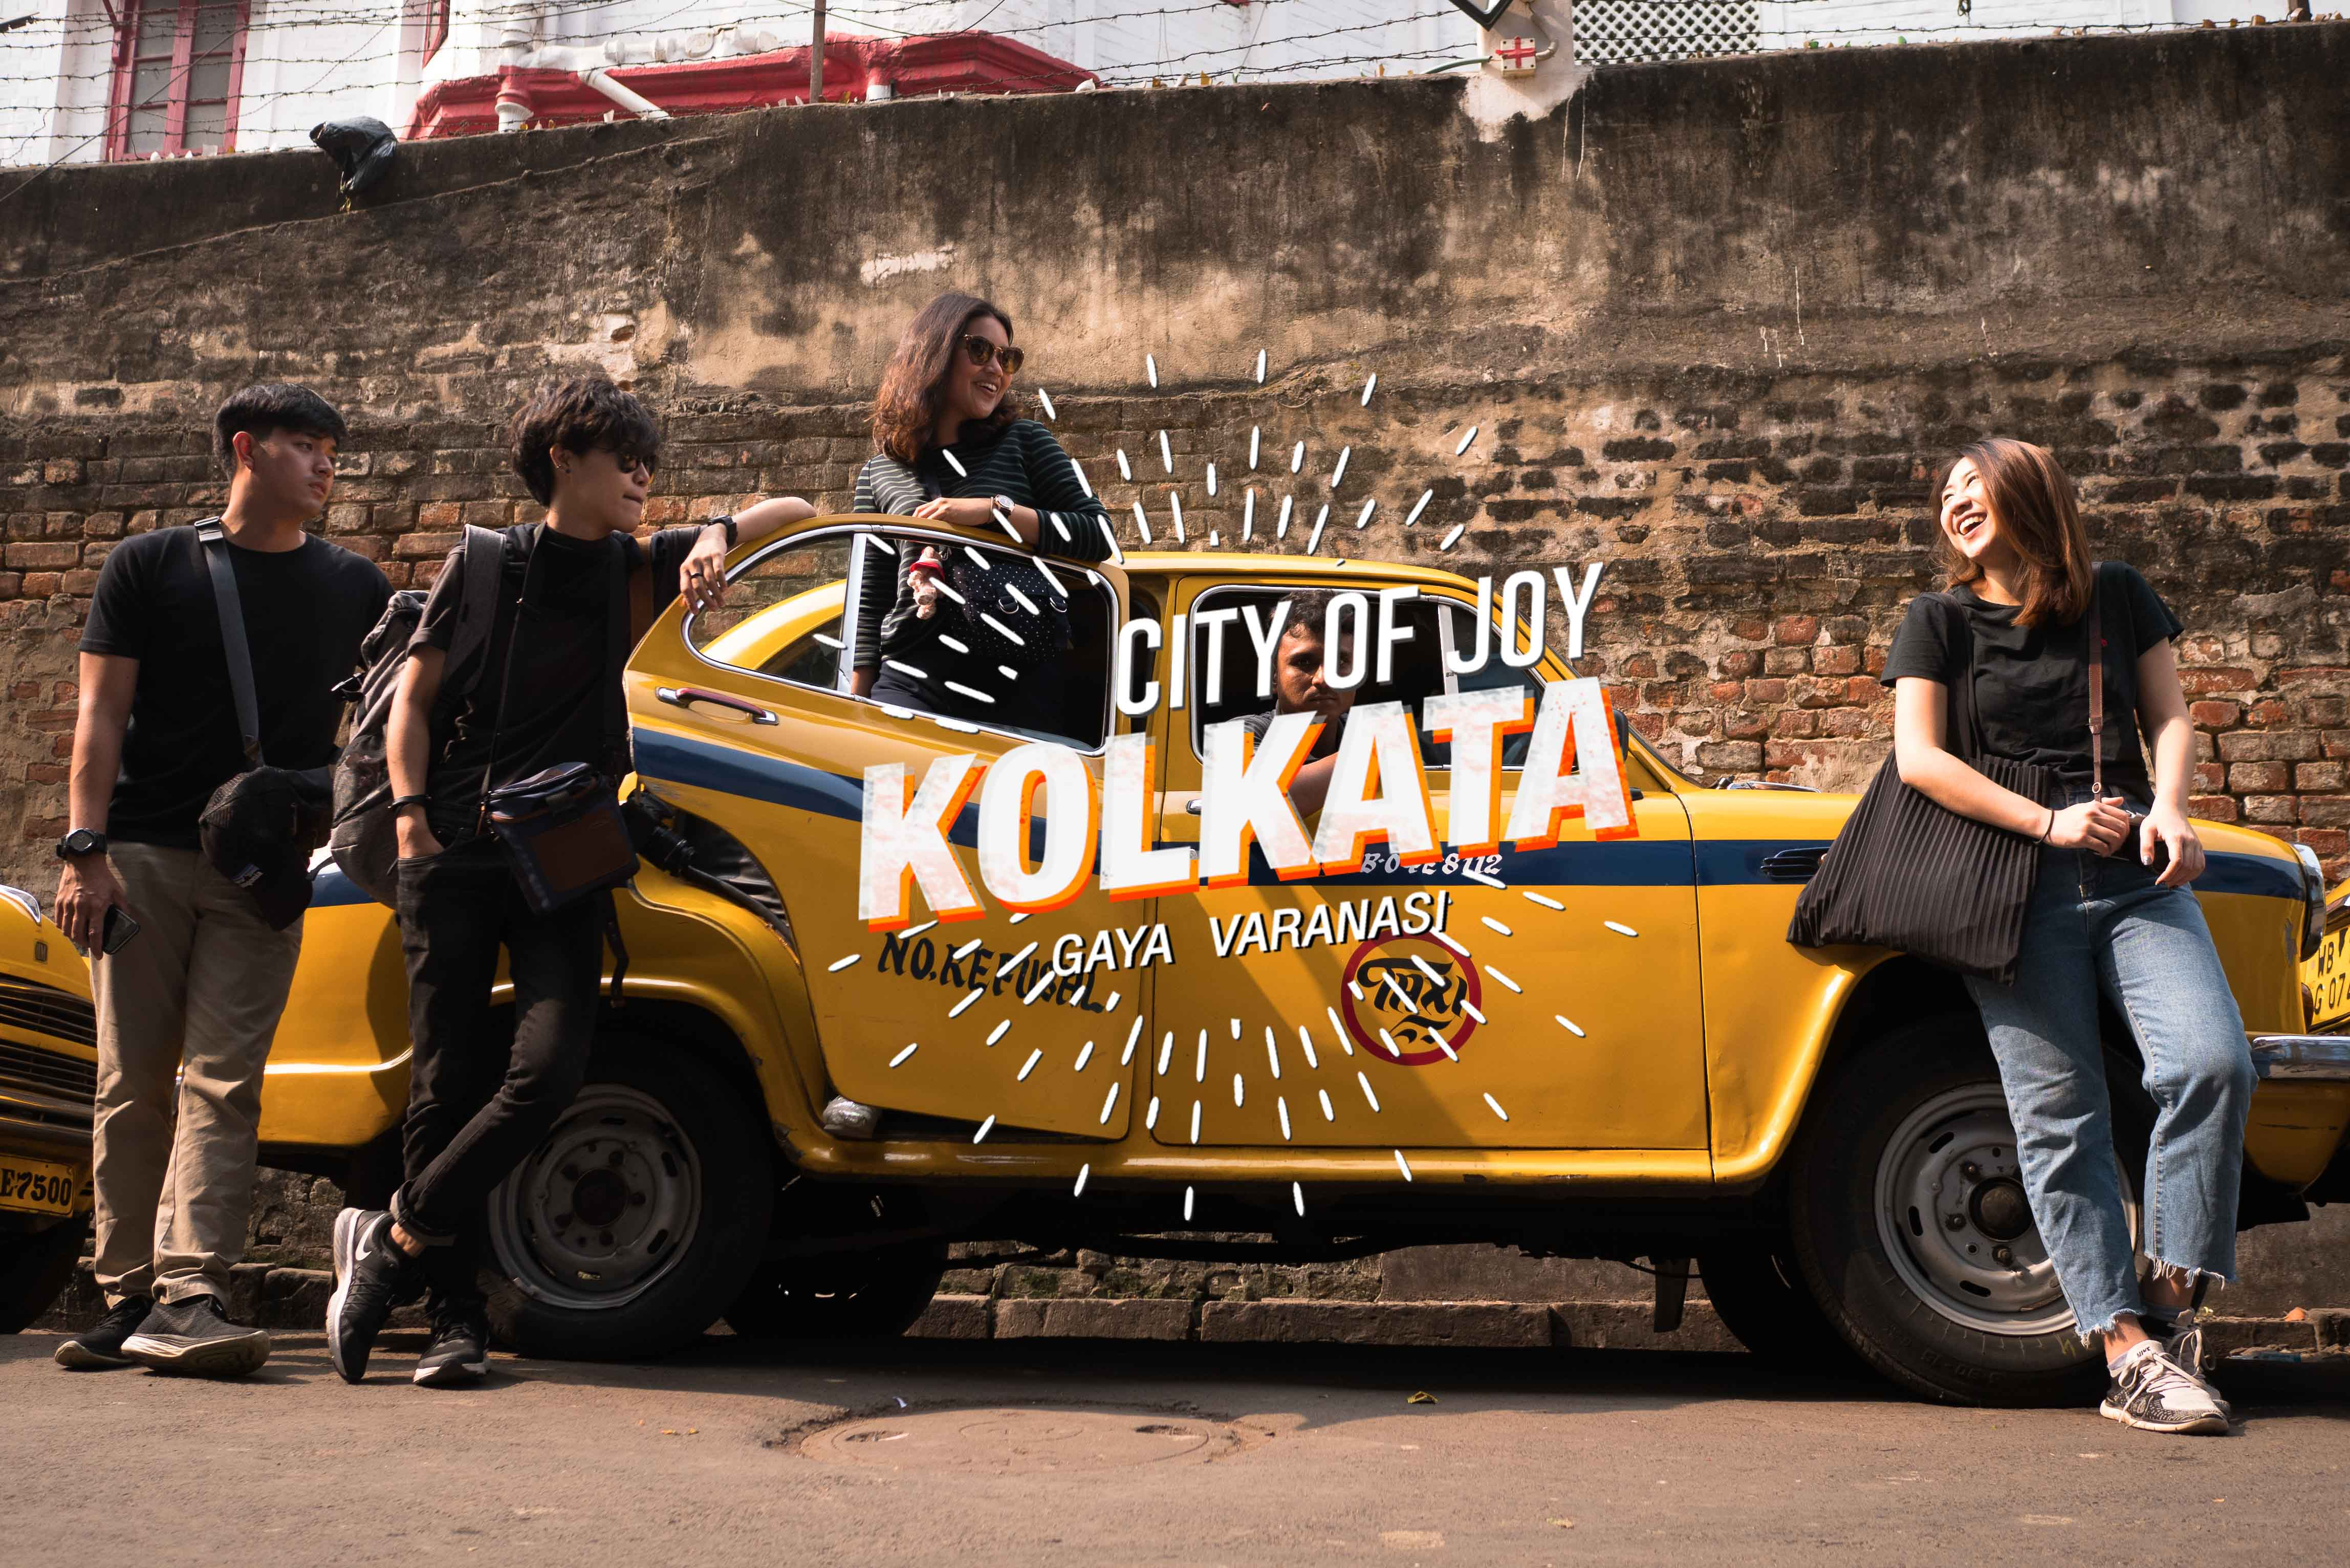 KOLKATA, The City of Joy